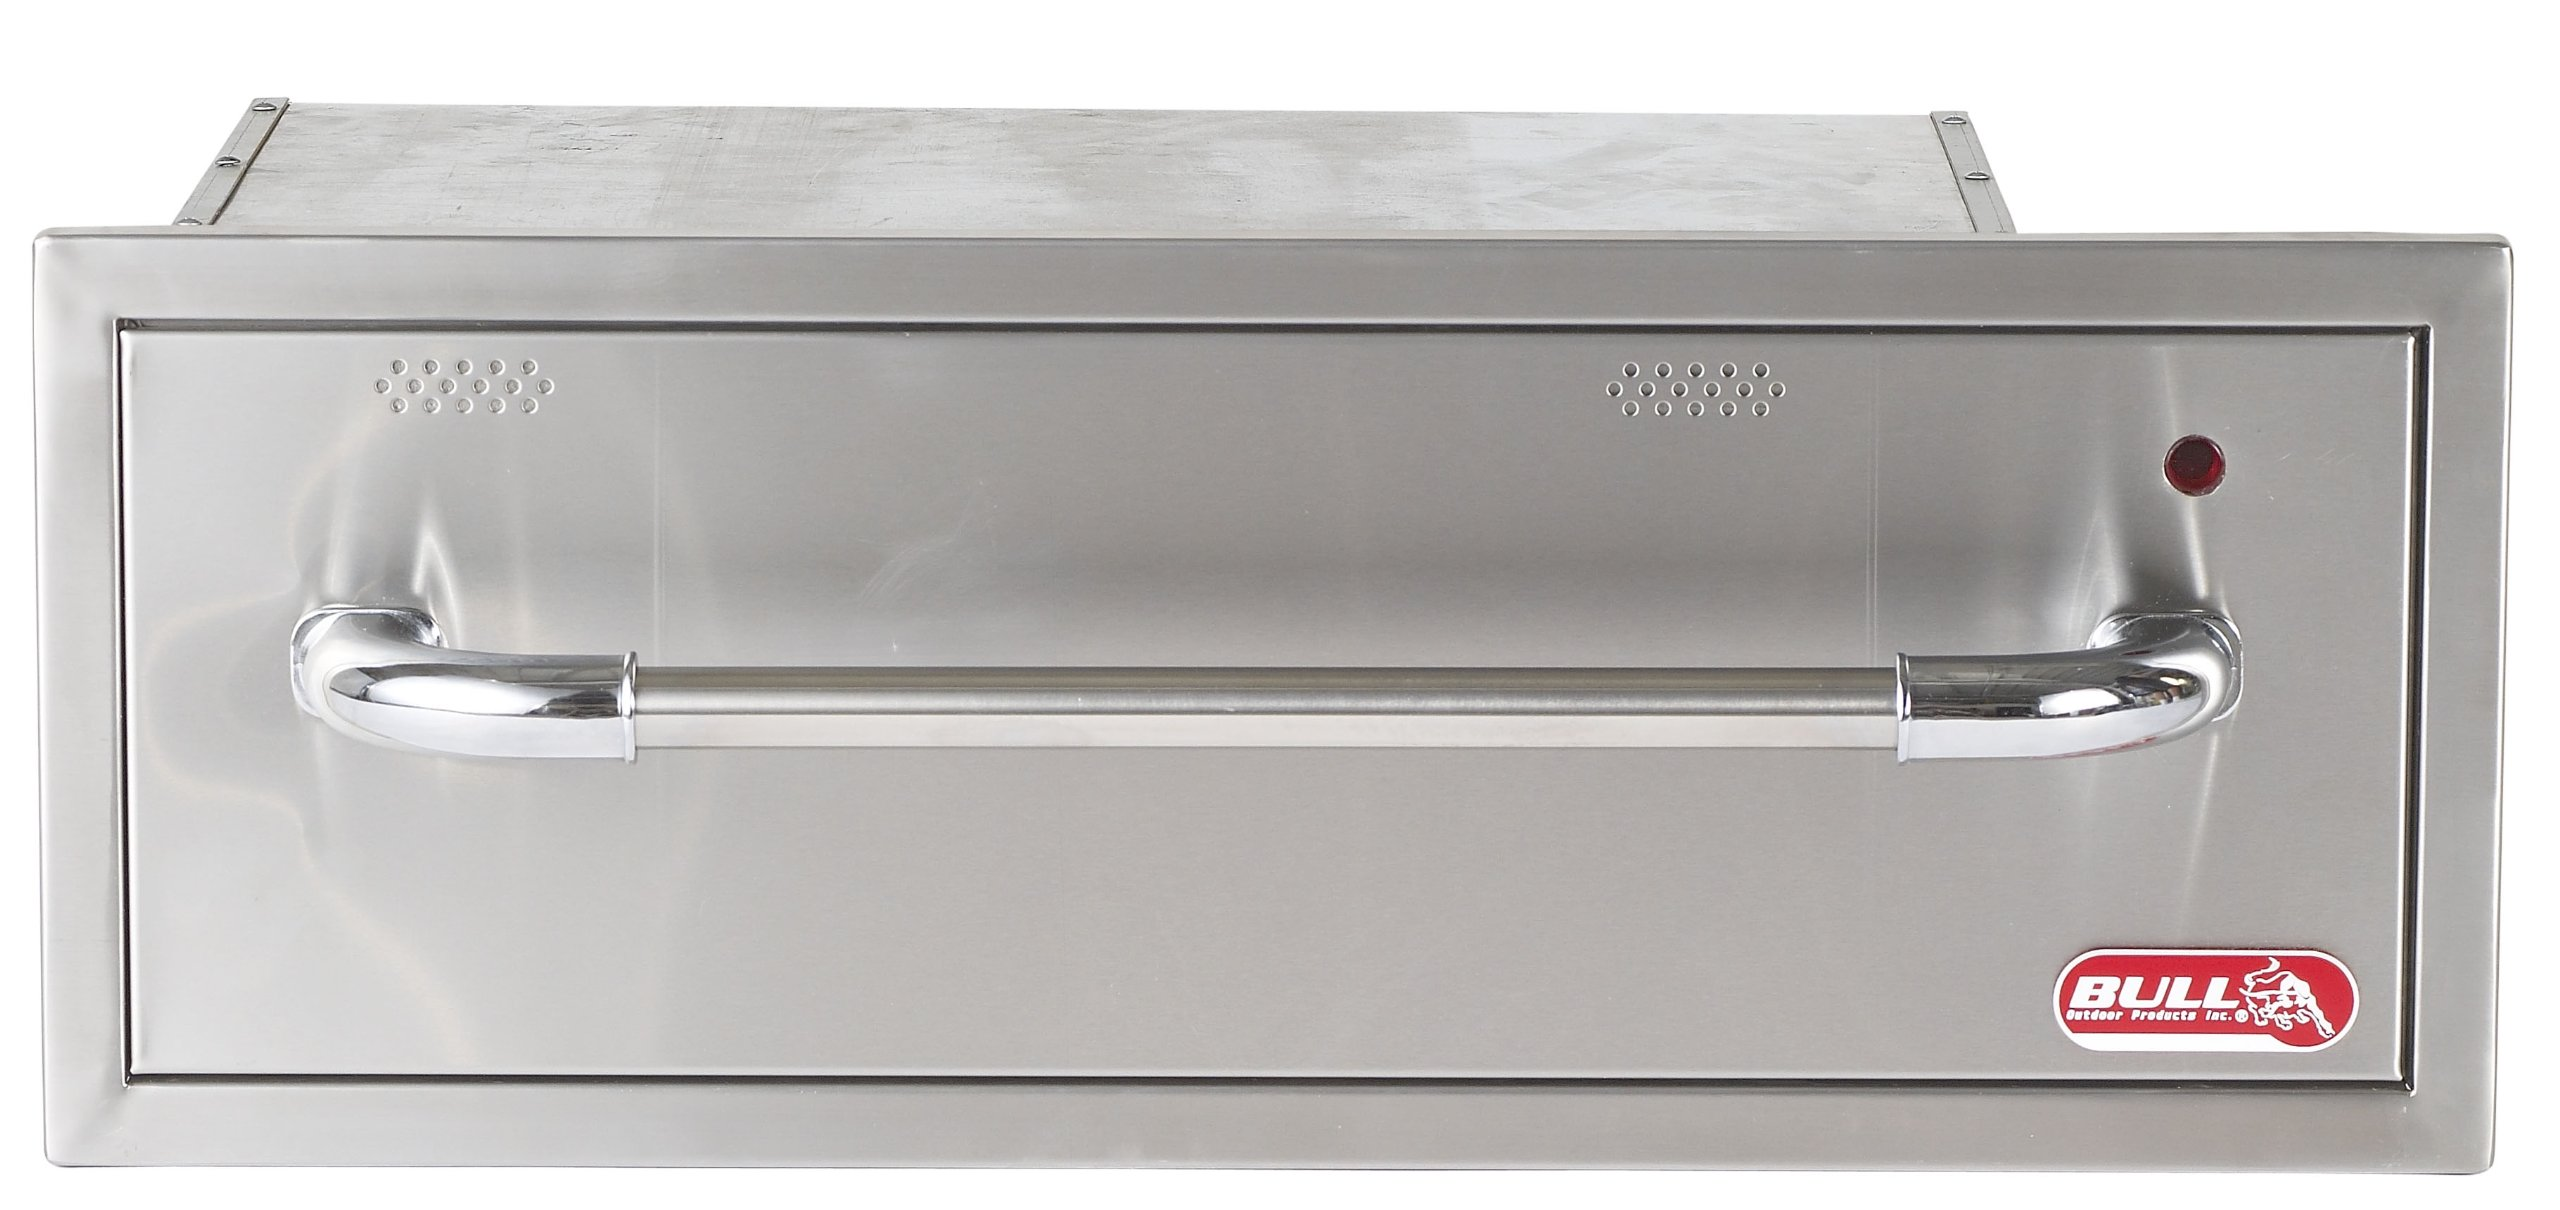 Bull Outdoor Products Stainless Steel Warming Drawer by Bull